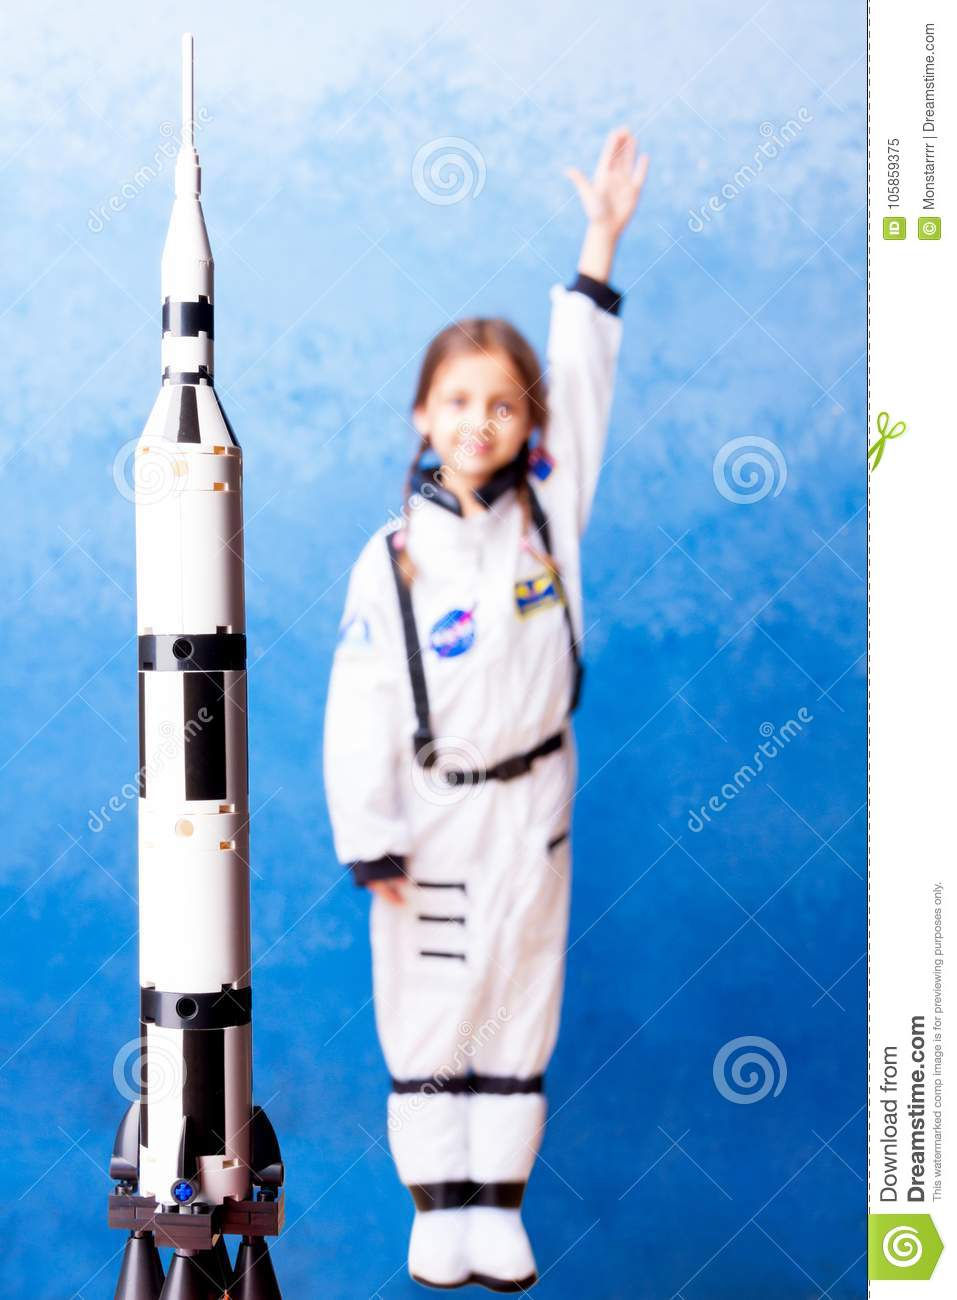 Download comp  sc 1 st  Dreamstime.com & Kid Playing In Astronaut With Constructor Stock Image - Image of ...